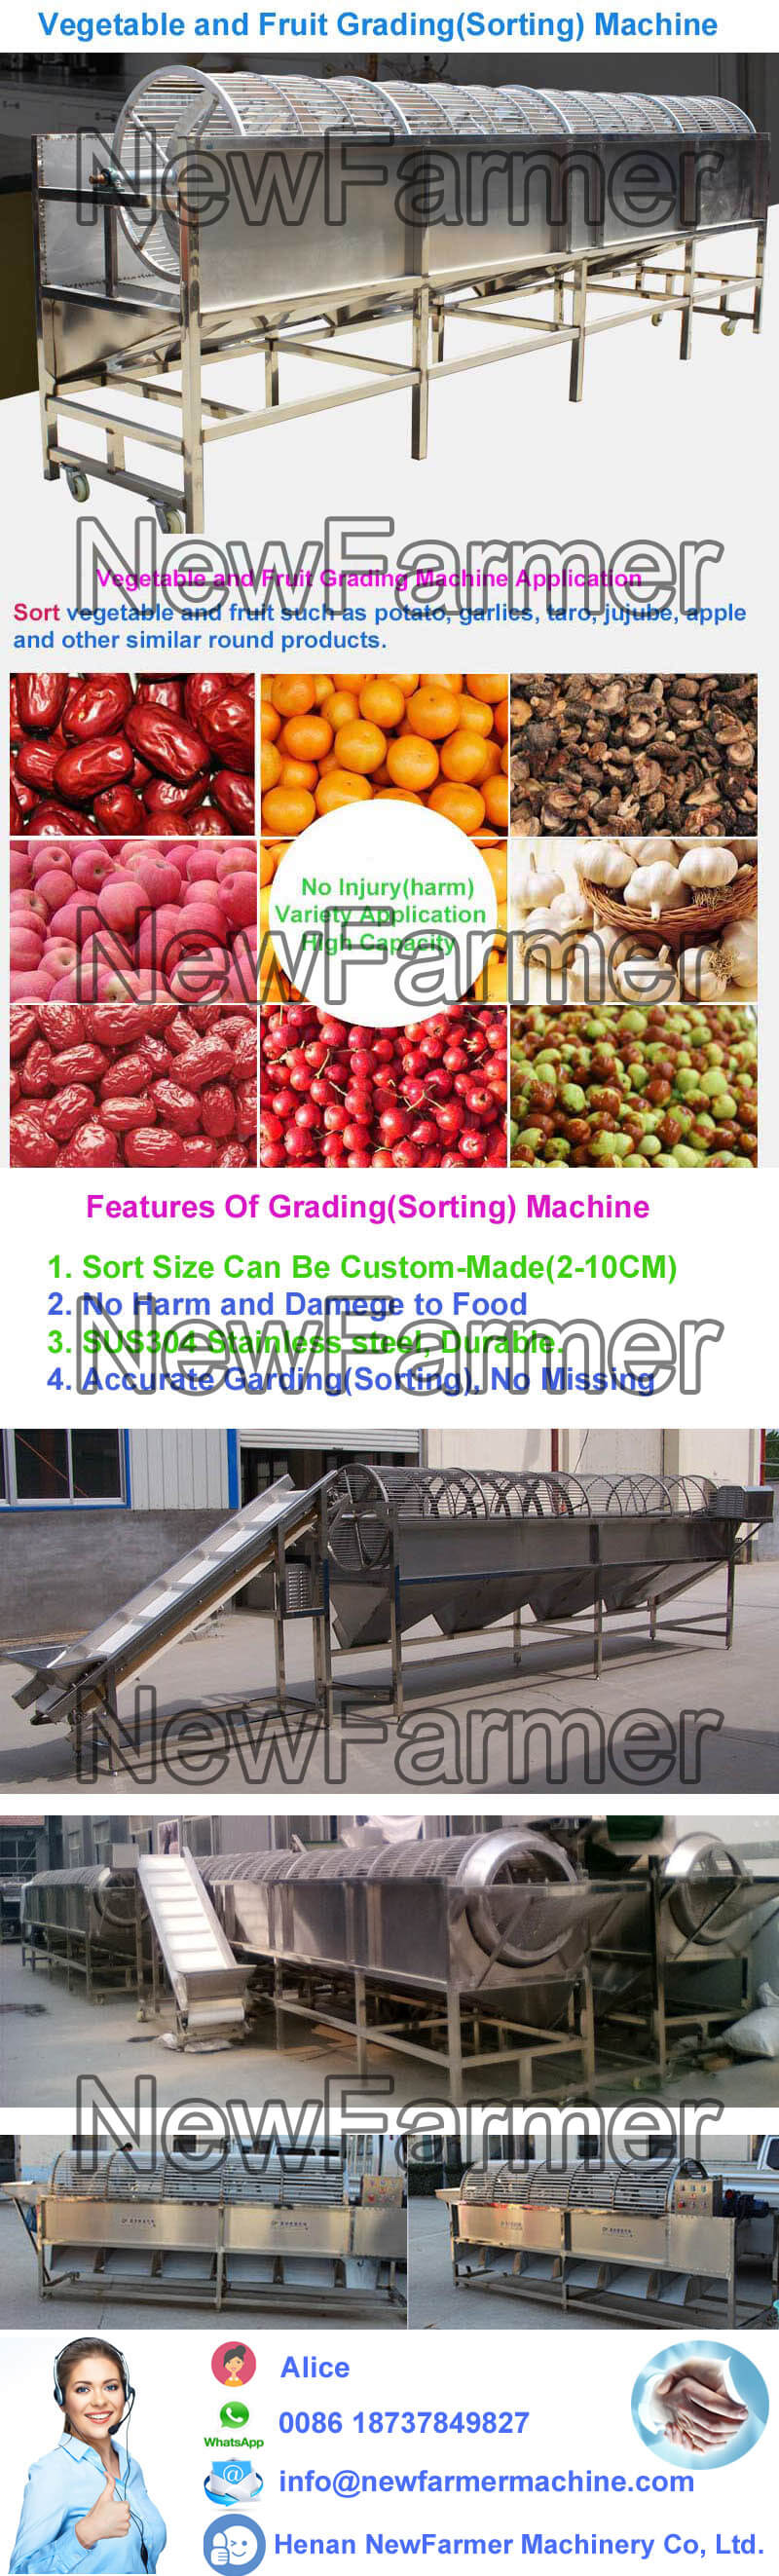 Vegetable and Fruit Sorting Machine